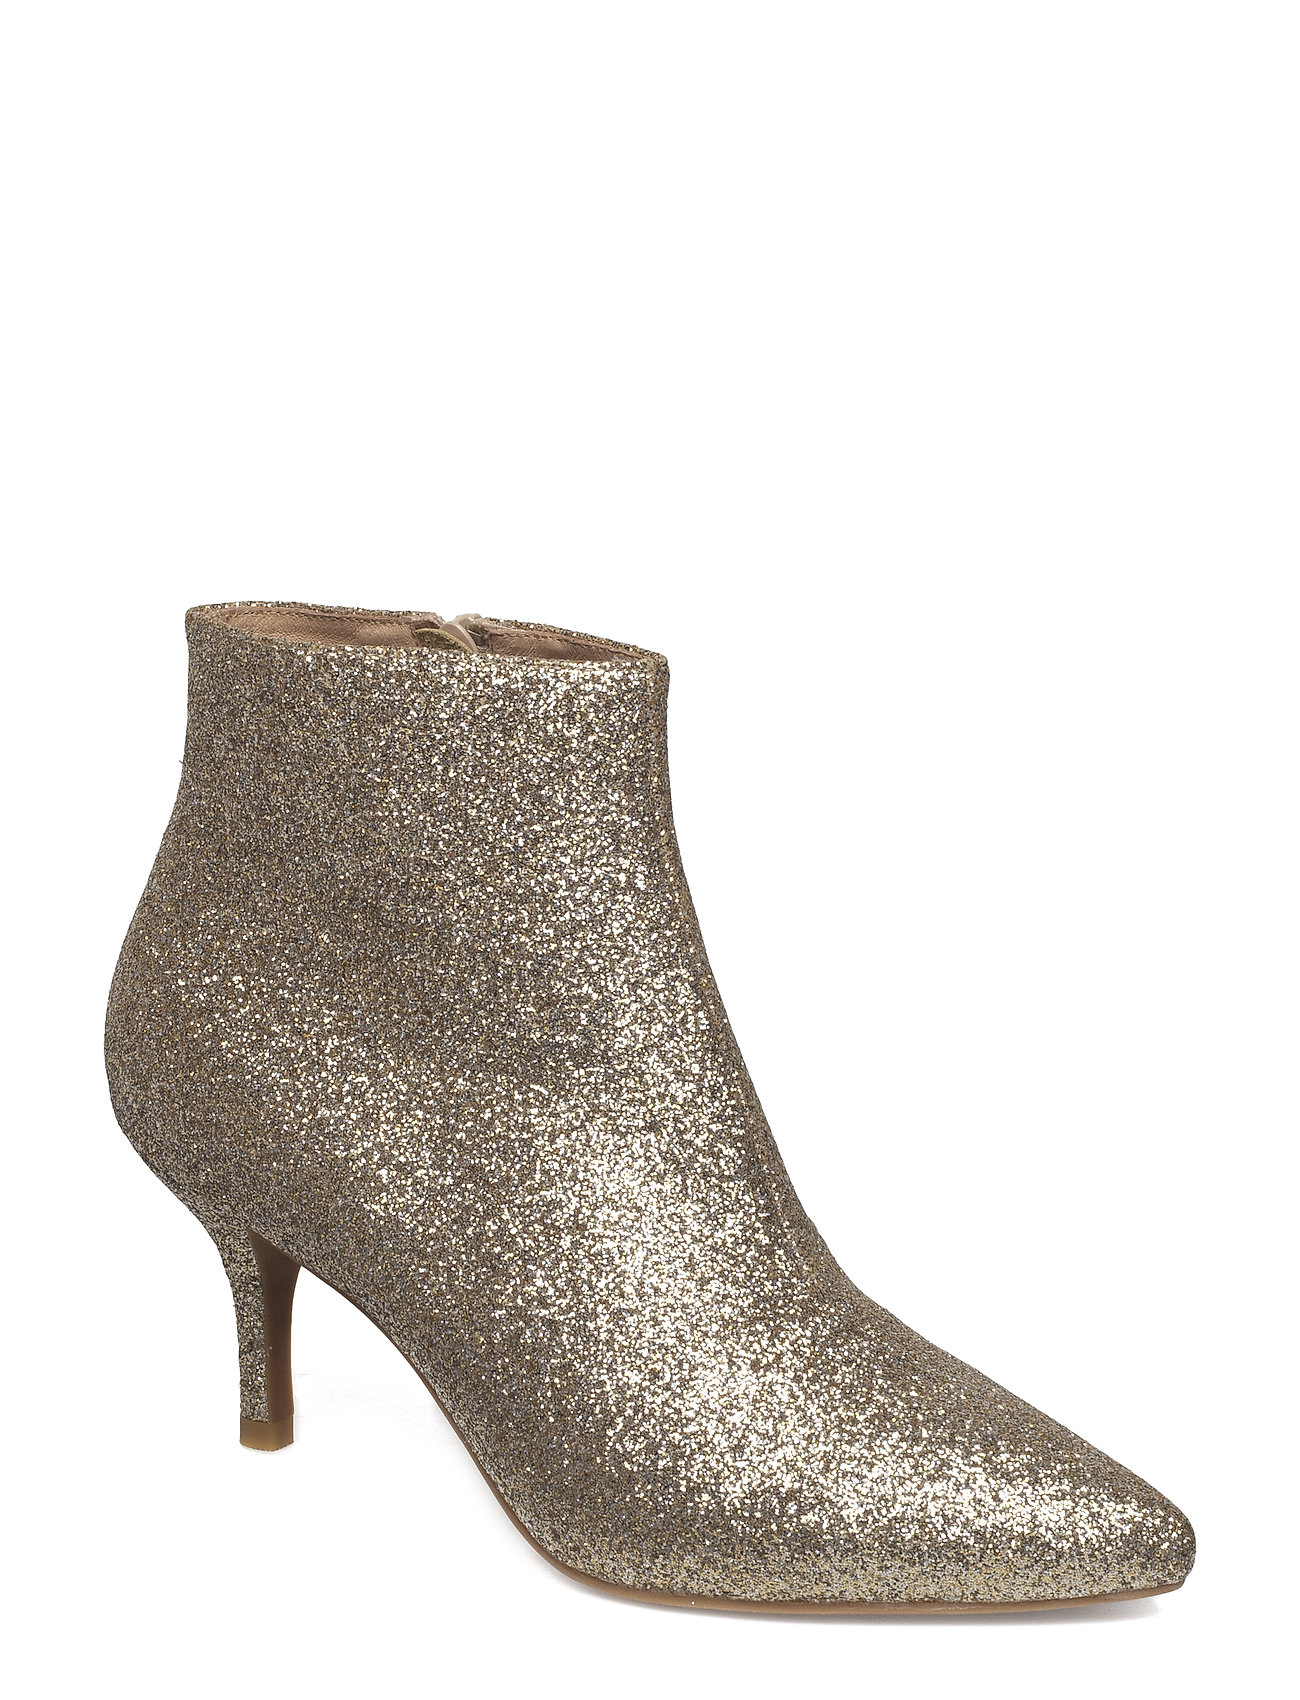 Image of Abby Shoes Boots Ankle Boots Ankle Boot - Heel Guld Shoe The Bear (3452133171)